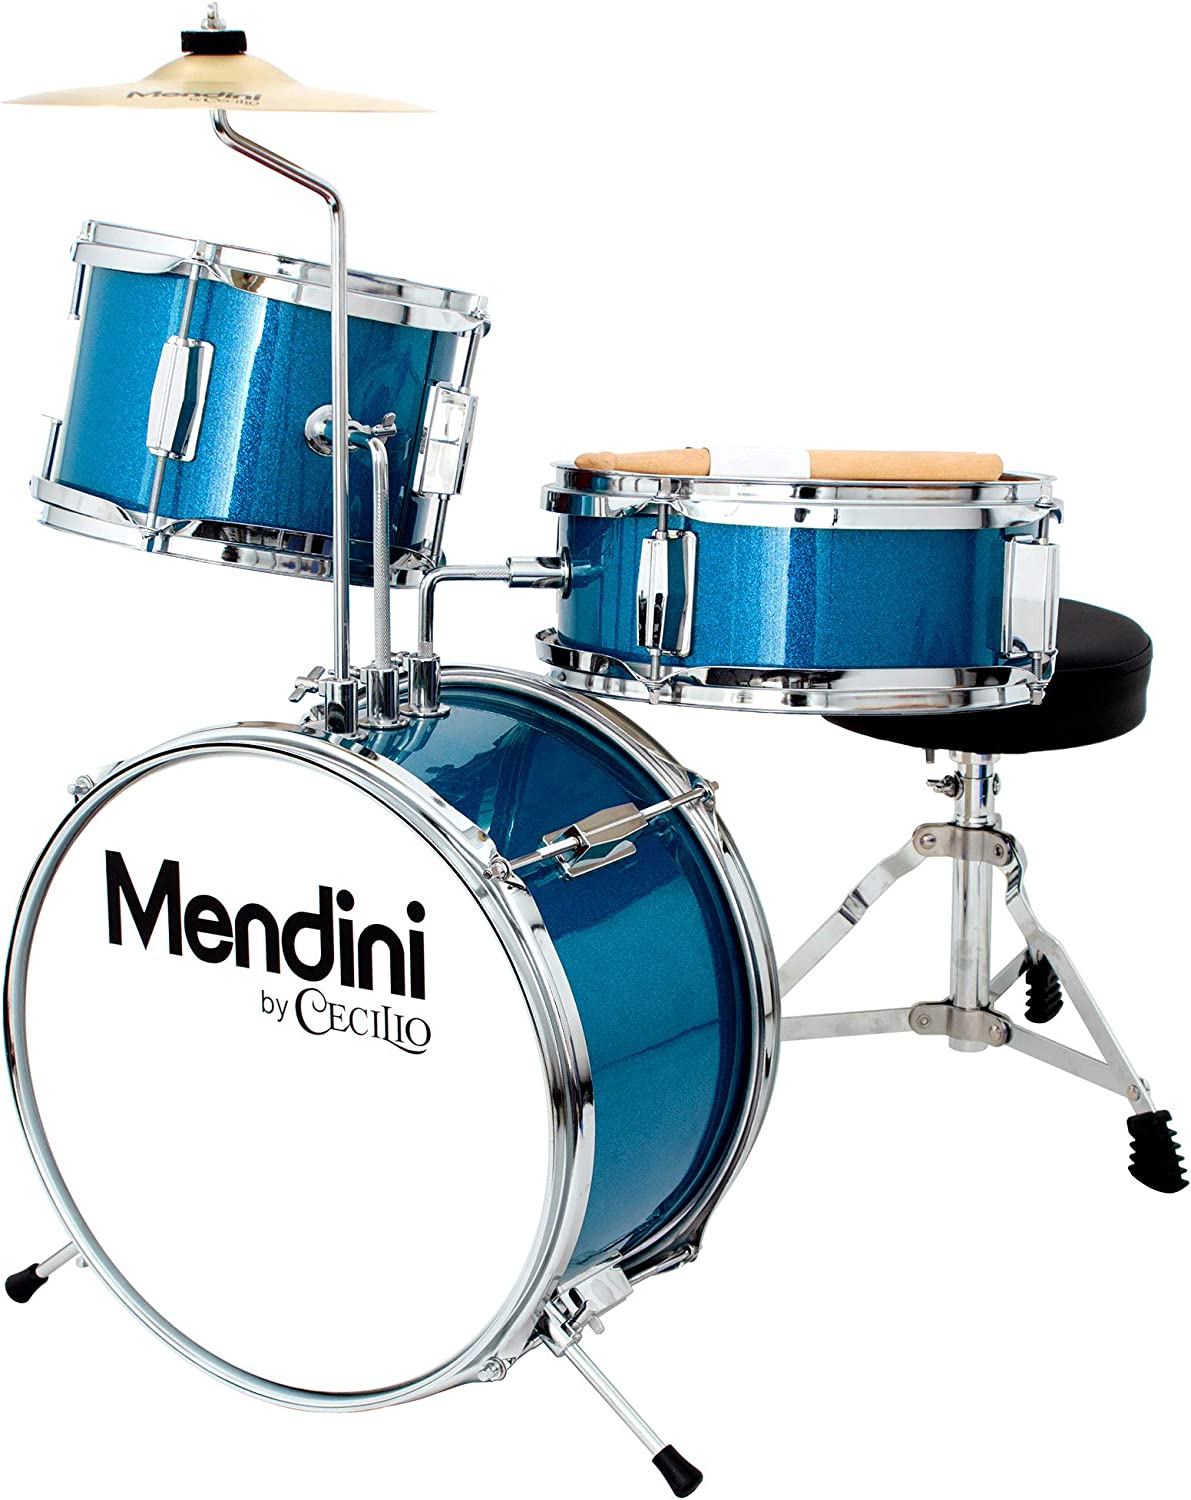 Mendini 3-Piece Junior Drum Set – Best for adjustability